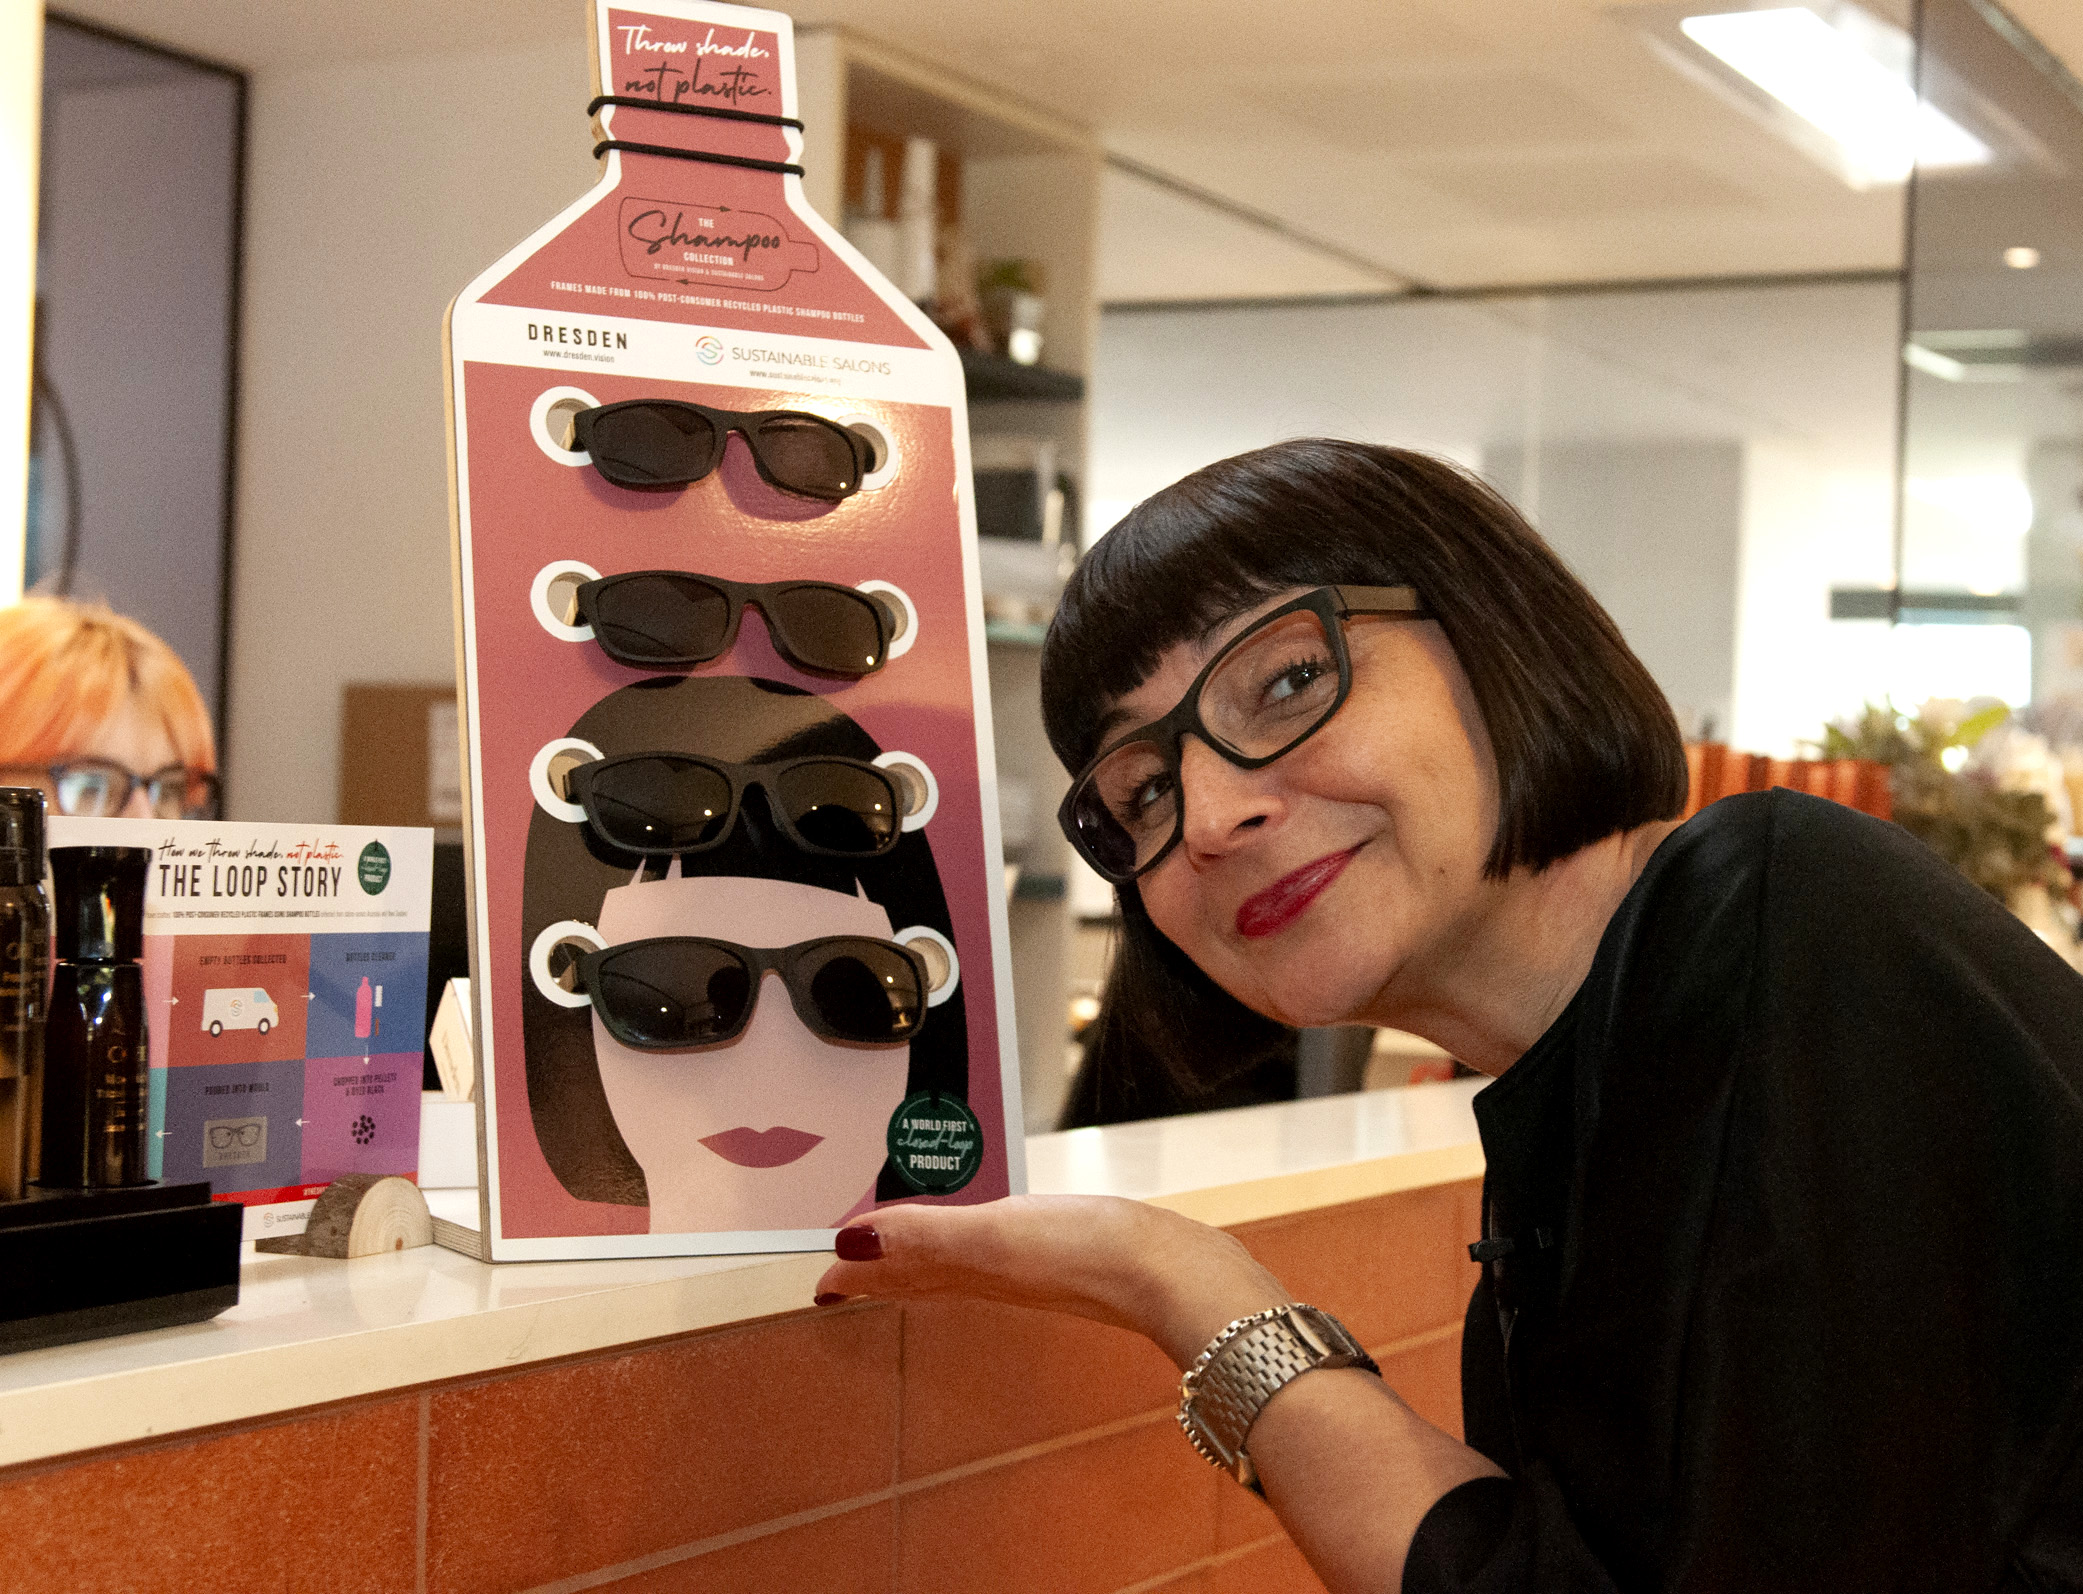 16. NSW Spotlight Salon owner Jayne Wild with The Shampoo Collection in-salon merchandise